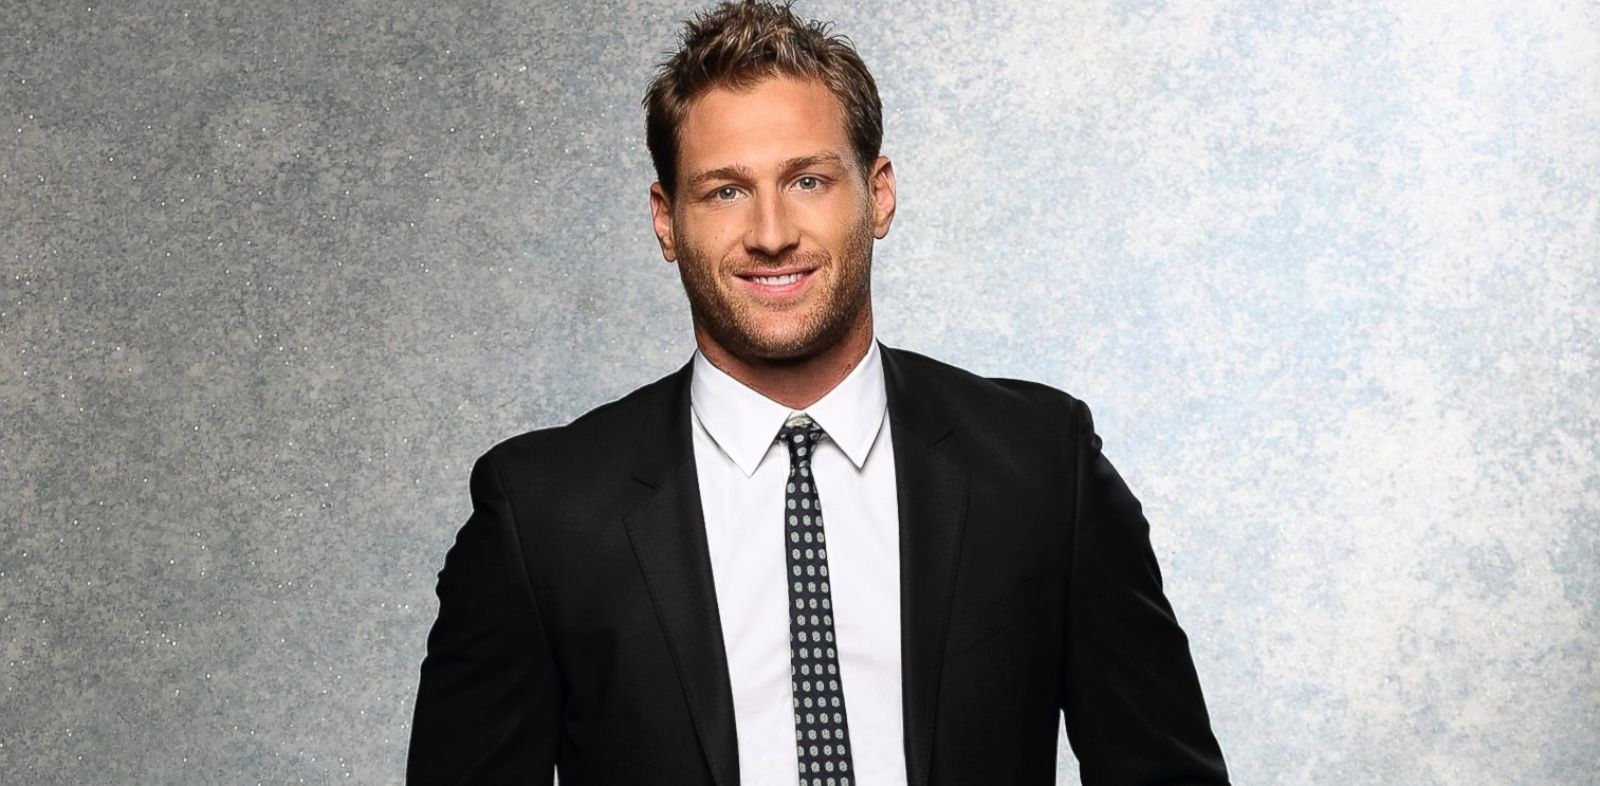 PHOTO: Juan Pablo Galavis, the sexy single father from Miami, Florida, is ready to find love, on the new season of The Bachelor.